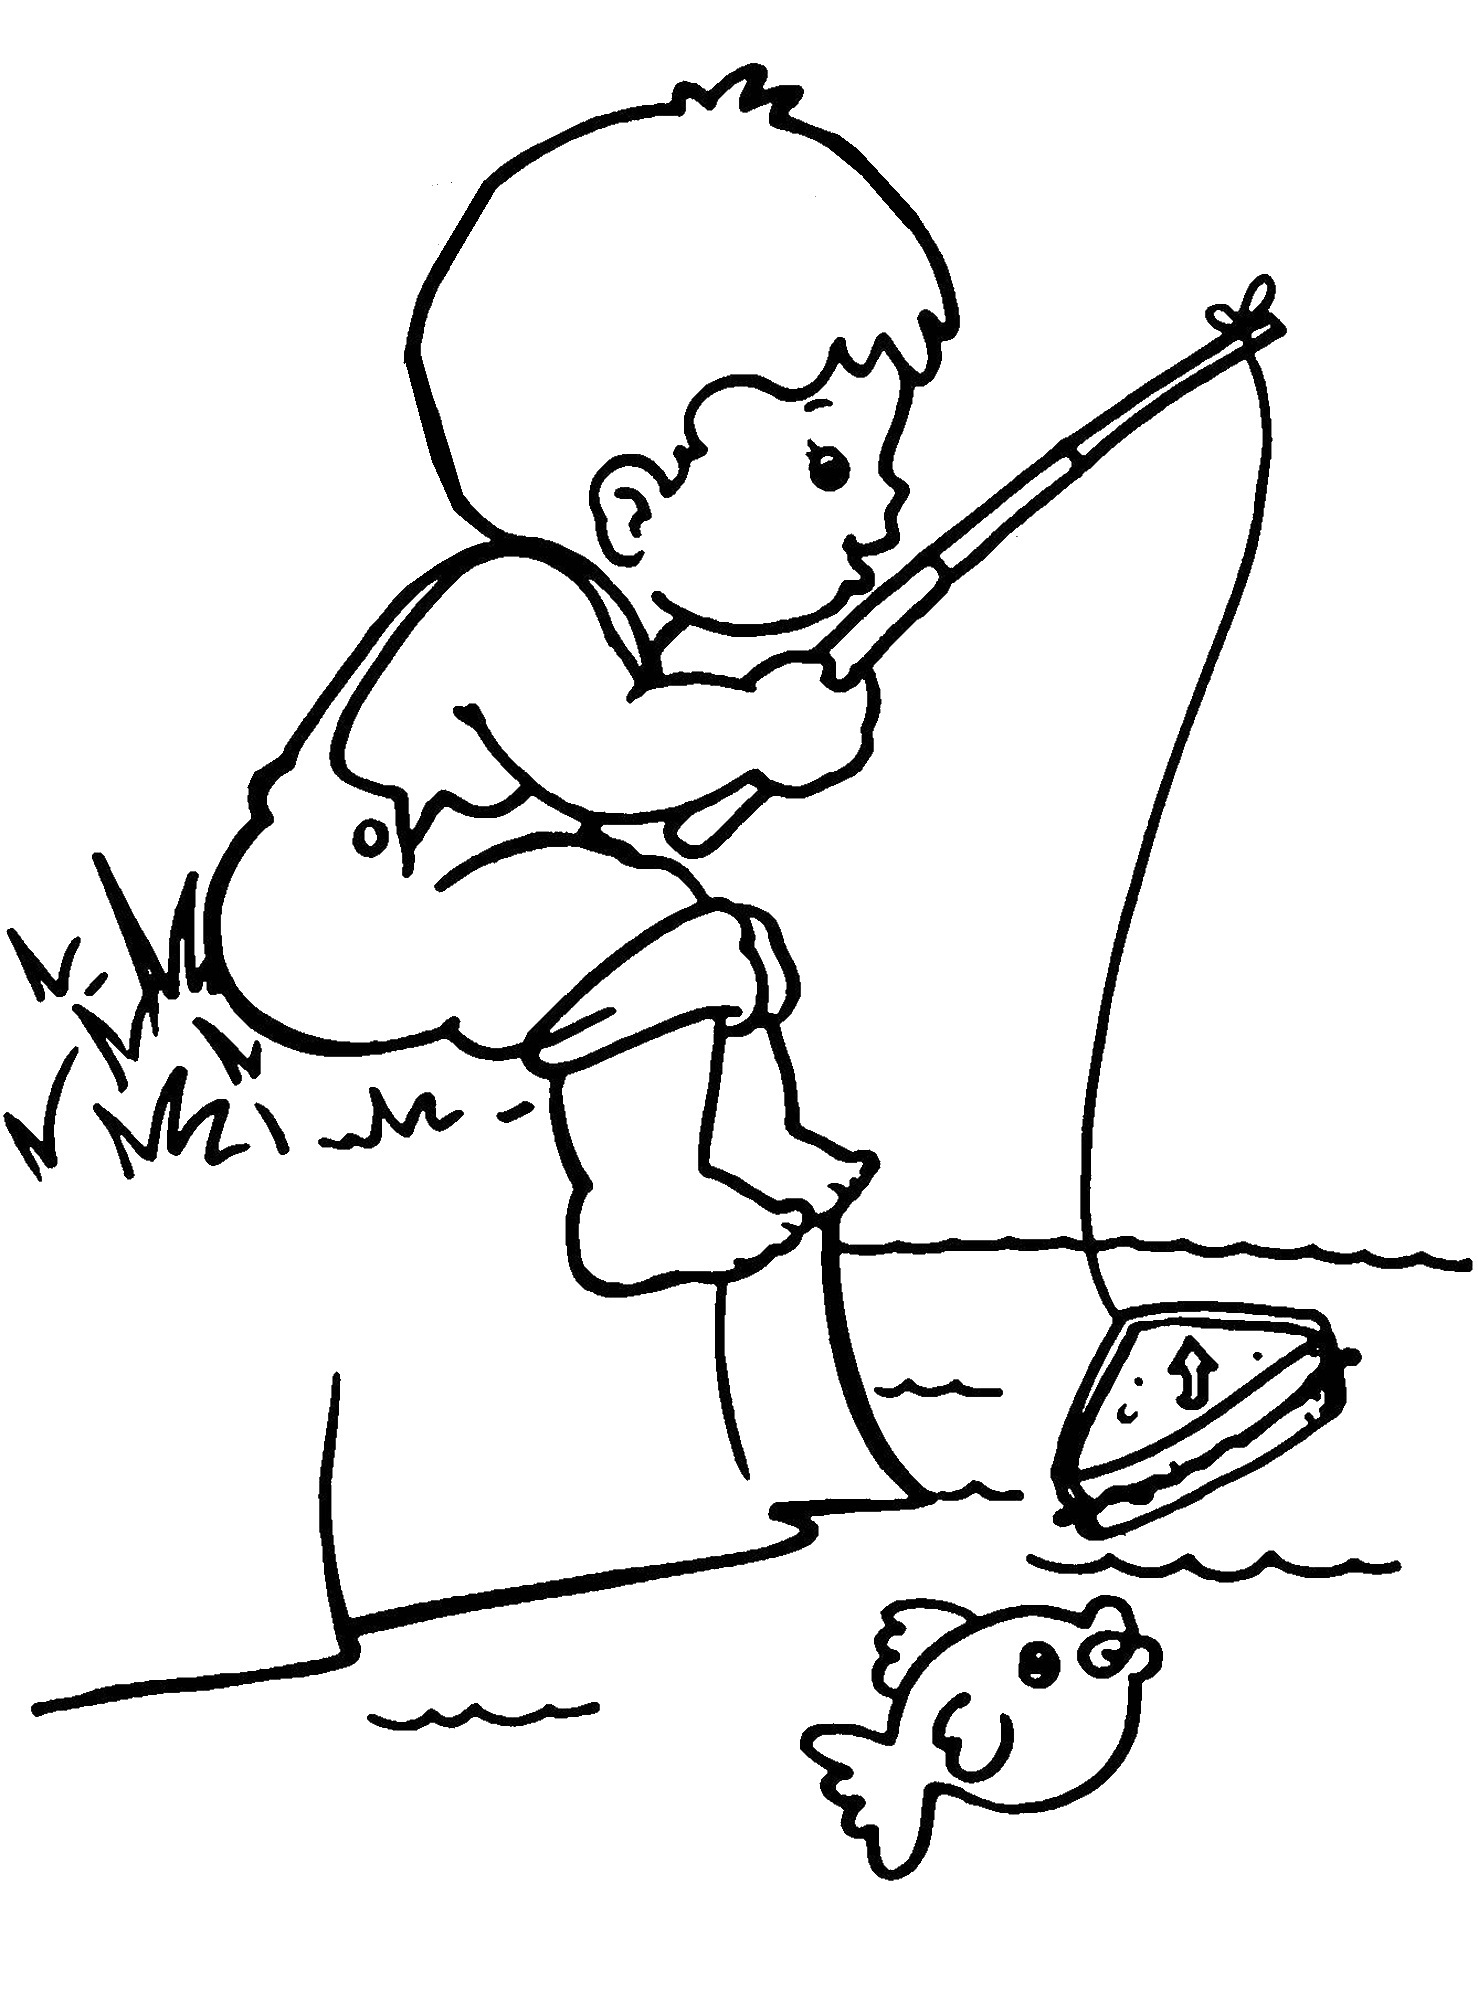 coloring pages kids boys - photo#29